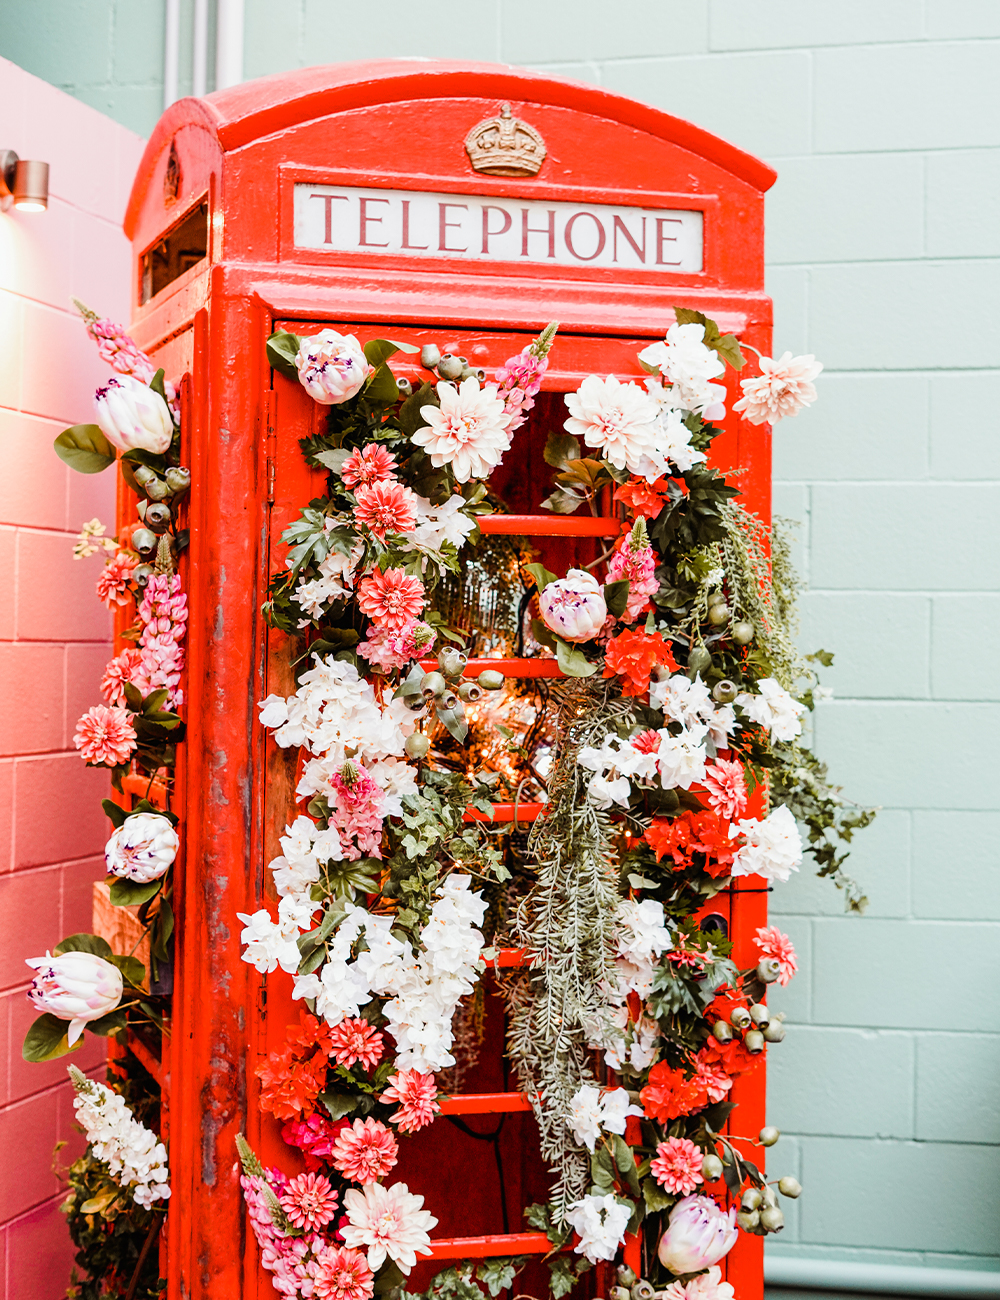 a red london style phone booth filled with flowers